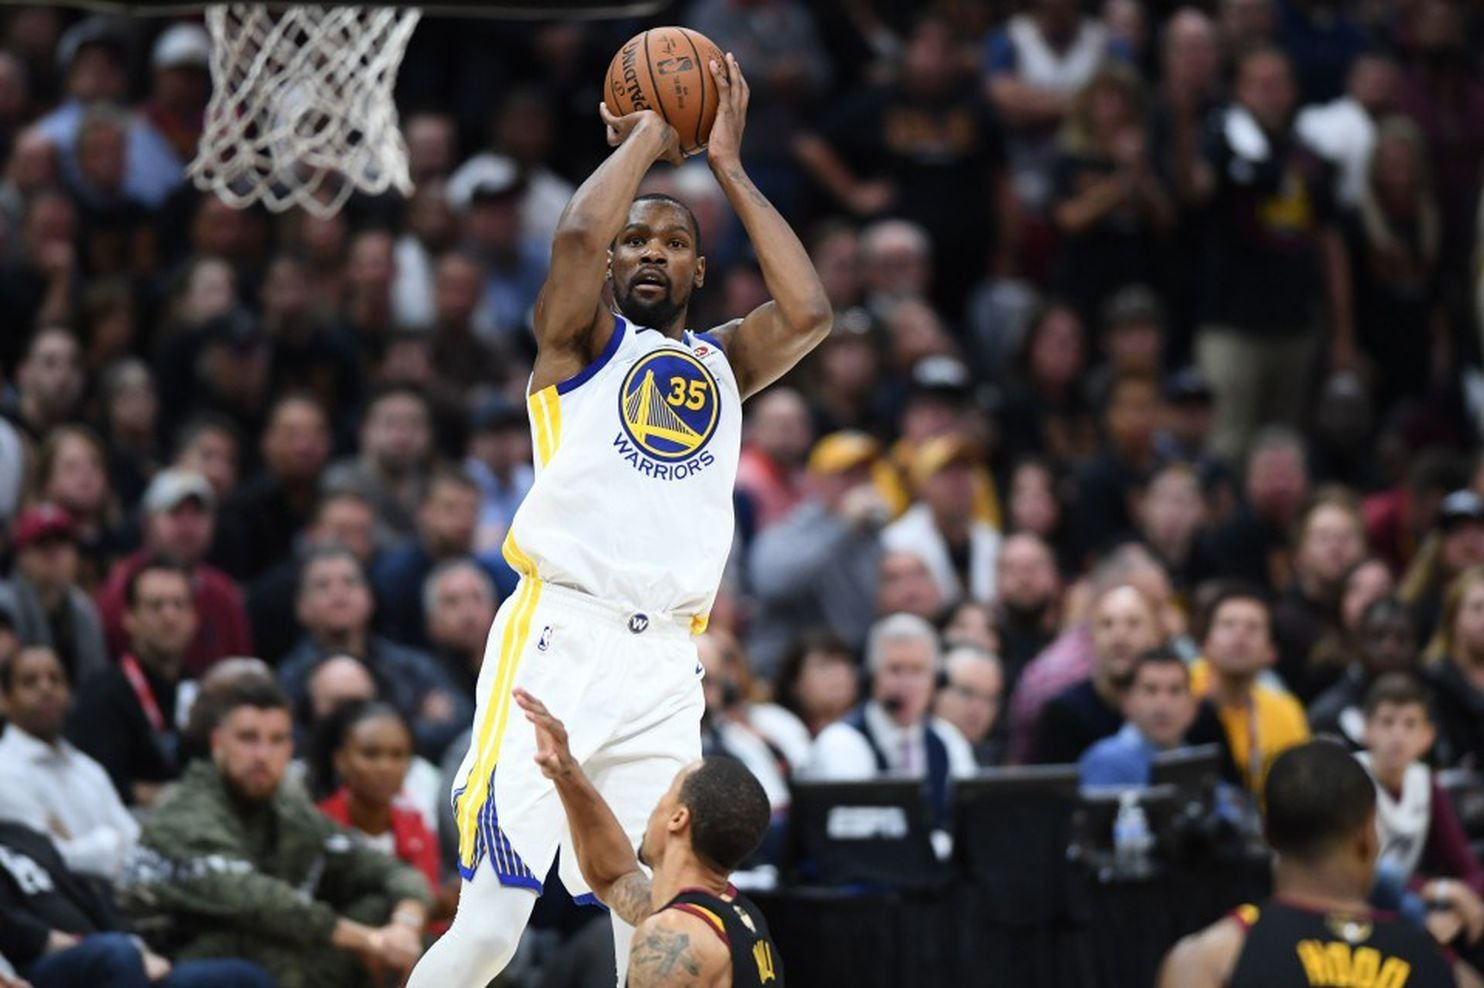 NBA Finals Durant leads Warriors past Cavaliers LeBron James in Game 3  The Washington Post